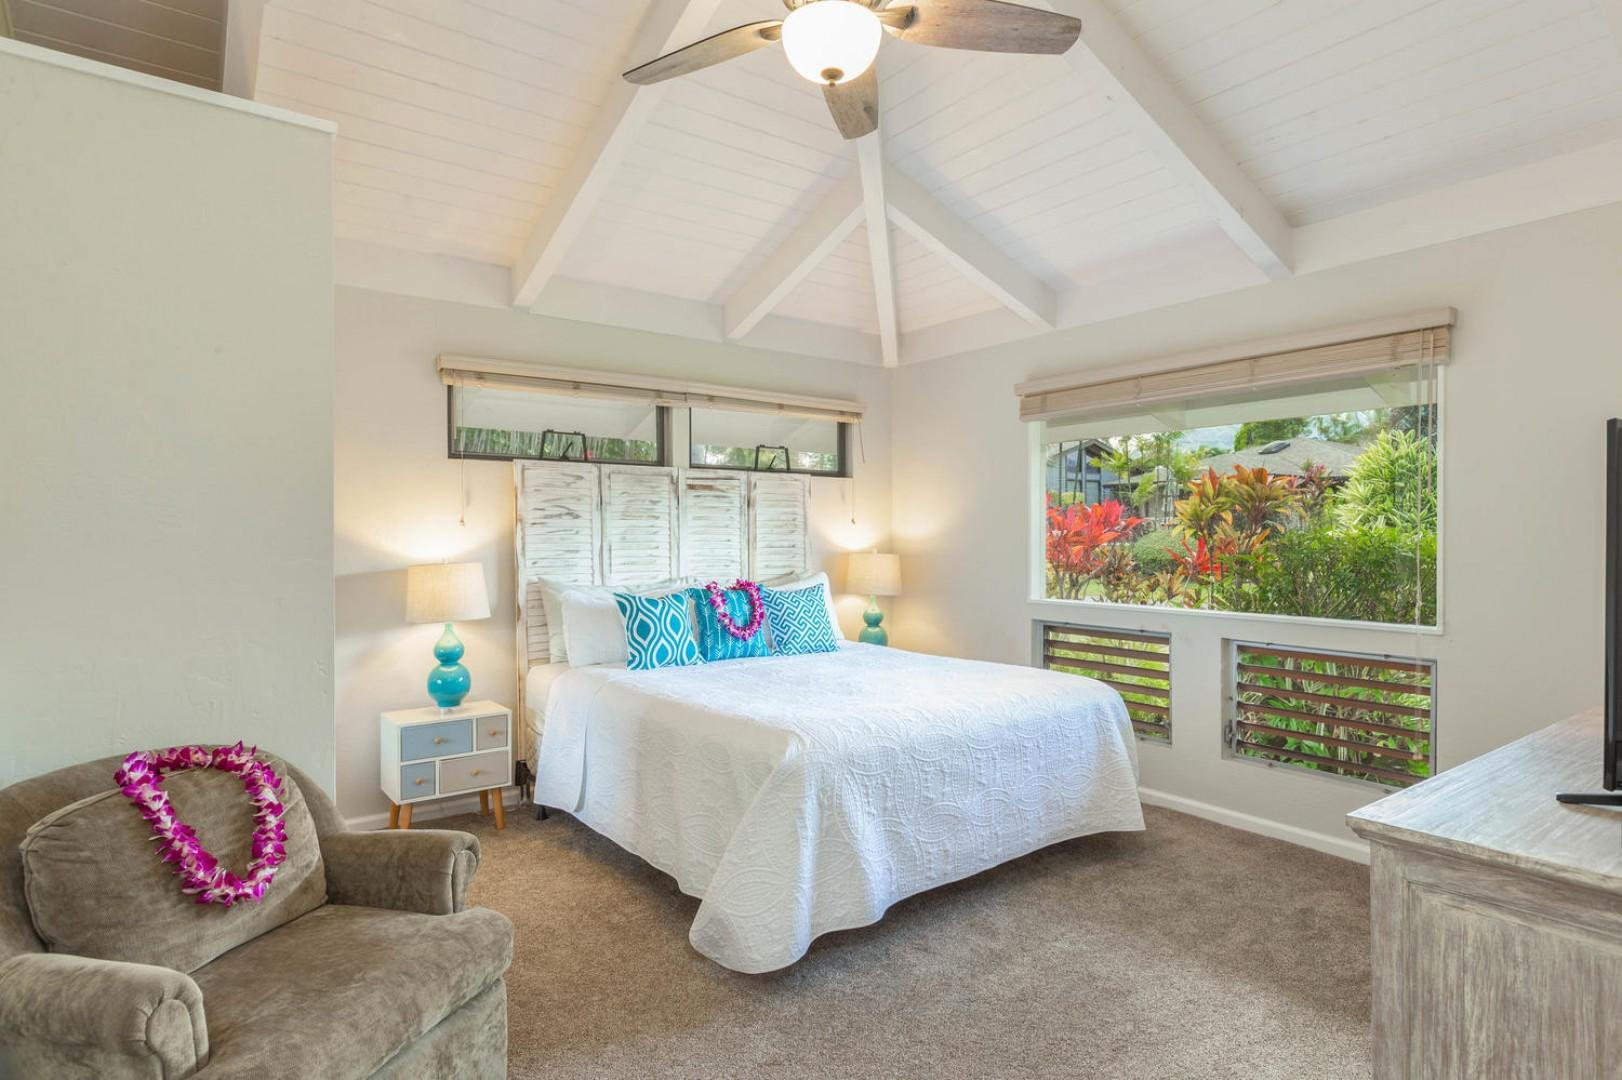 Lovely guest bedroom with a king-size bed